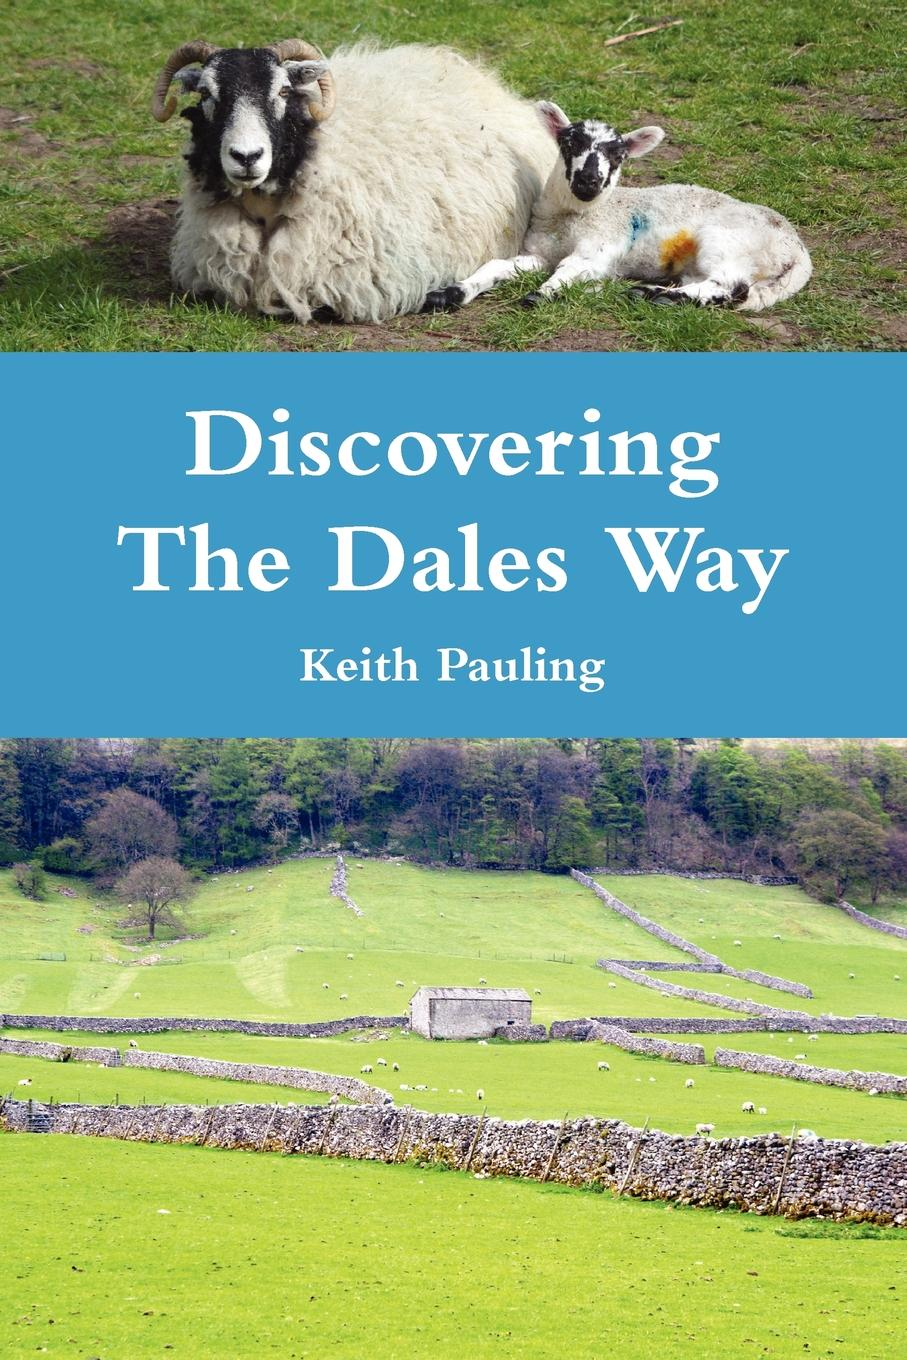 Keith Pauling Discovering The Dales Way